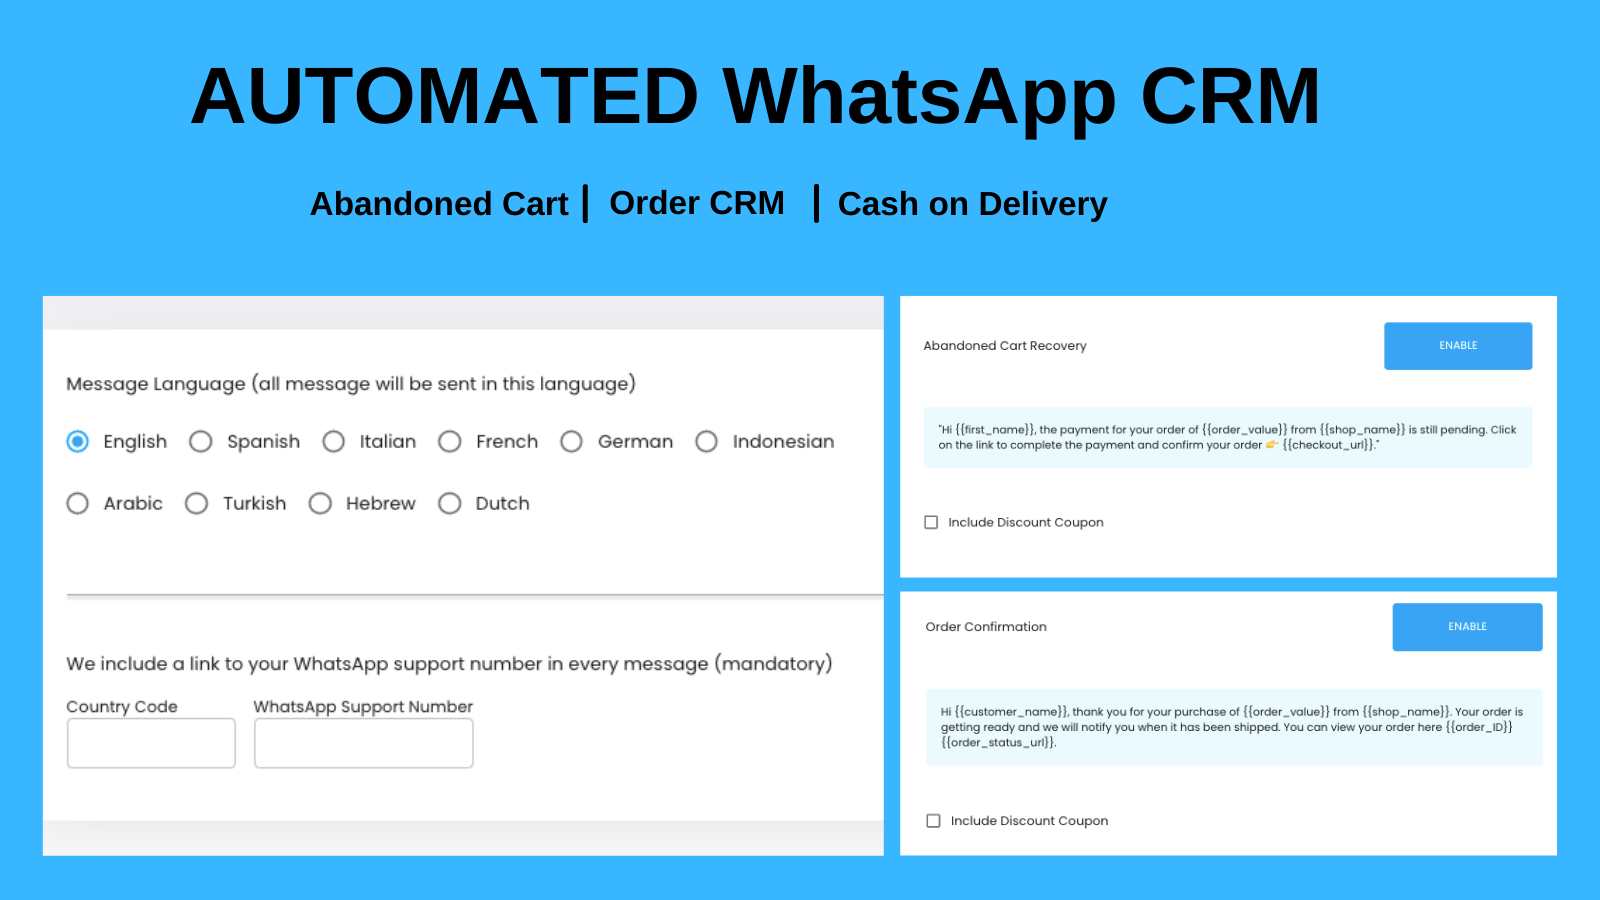 Automated Order CRM